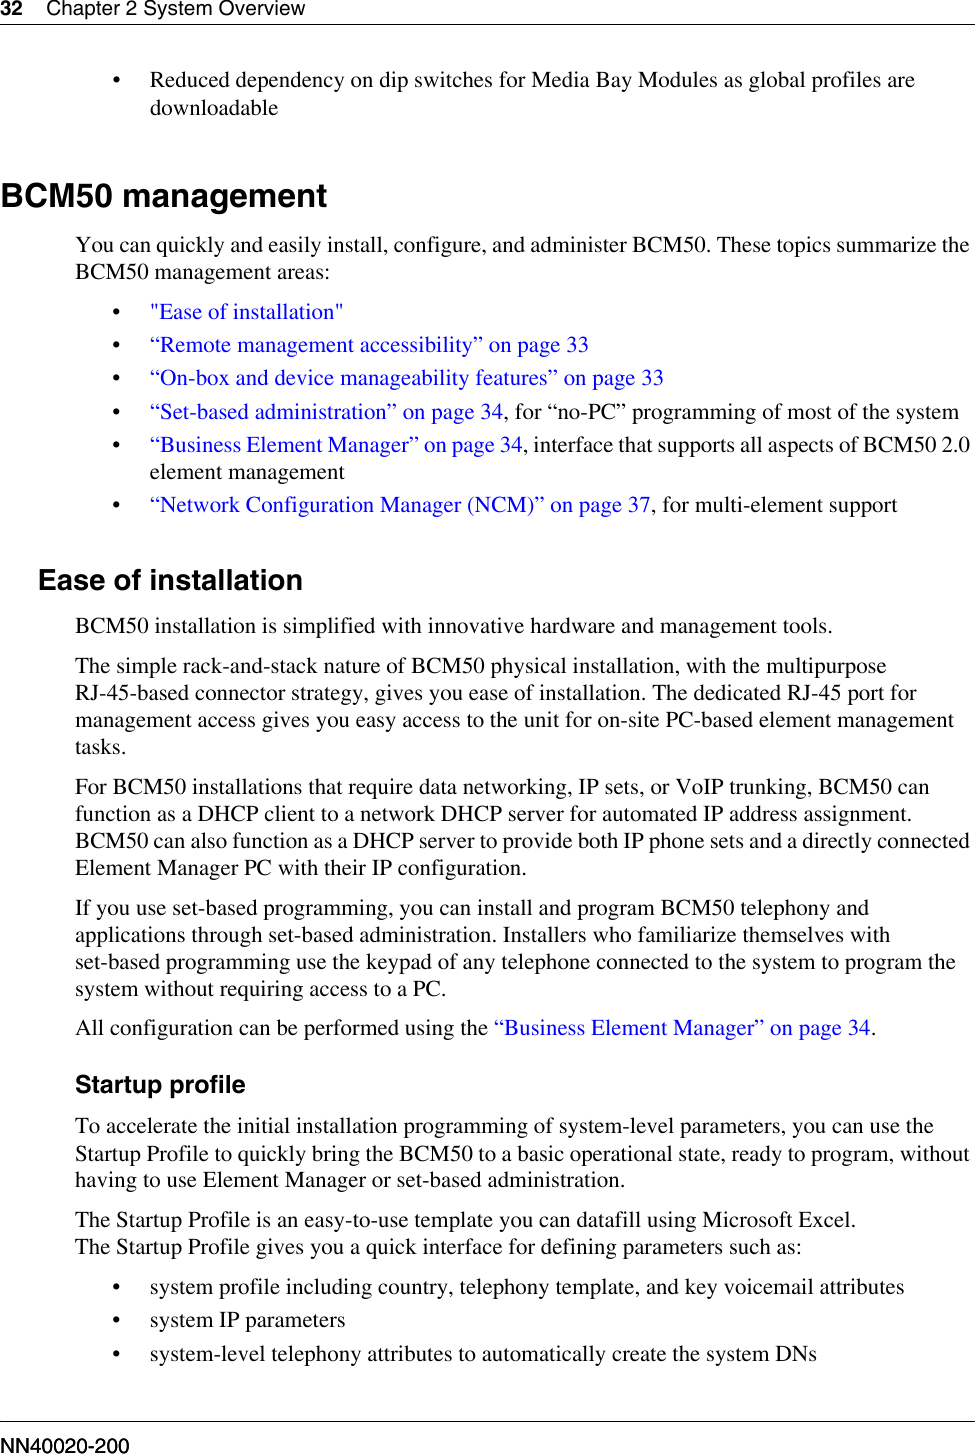 Nortel Networks Wok Bcm50 2 0 Users Manual System Overview